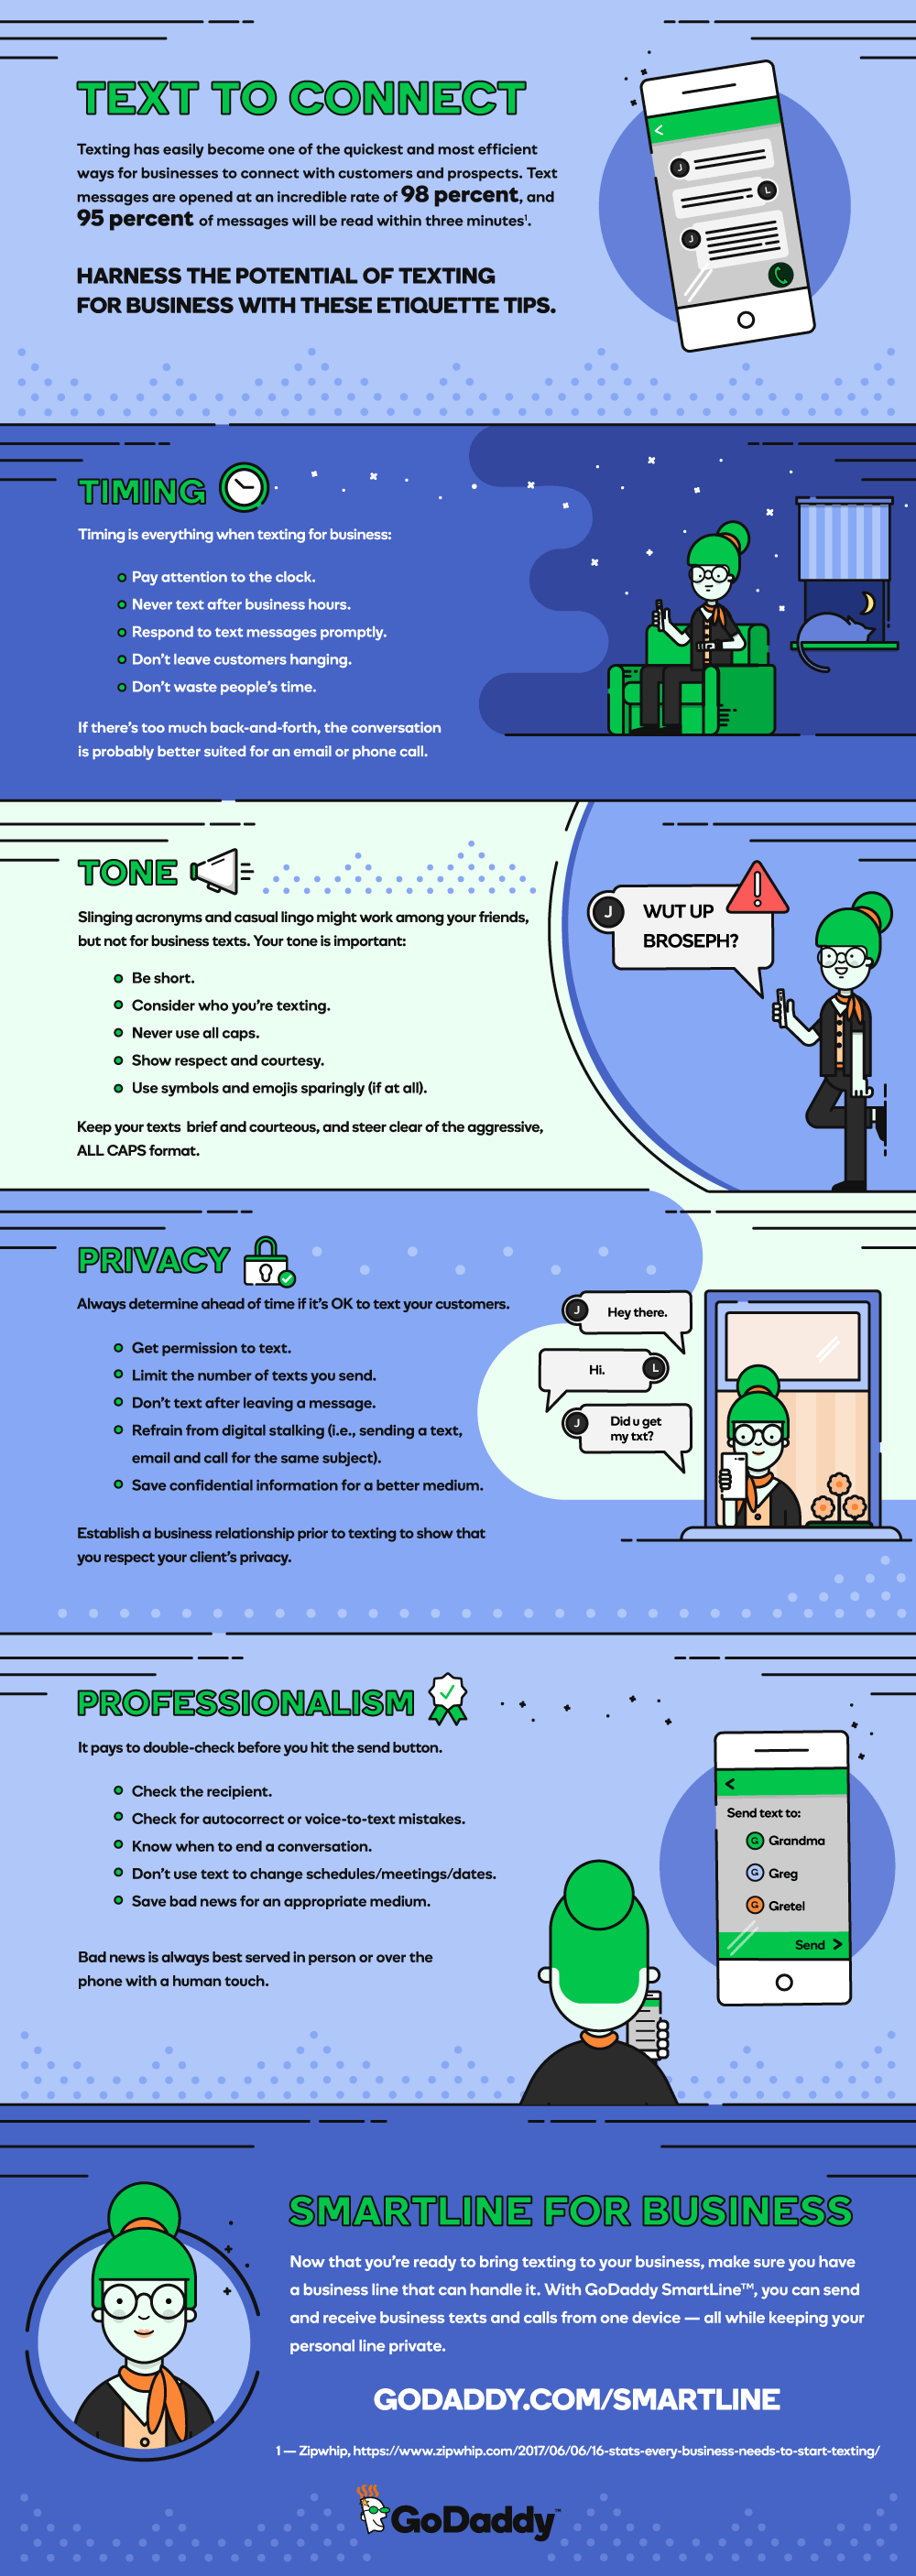 GoDaddy Text Etiquette Infographic